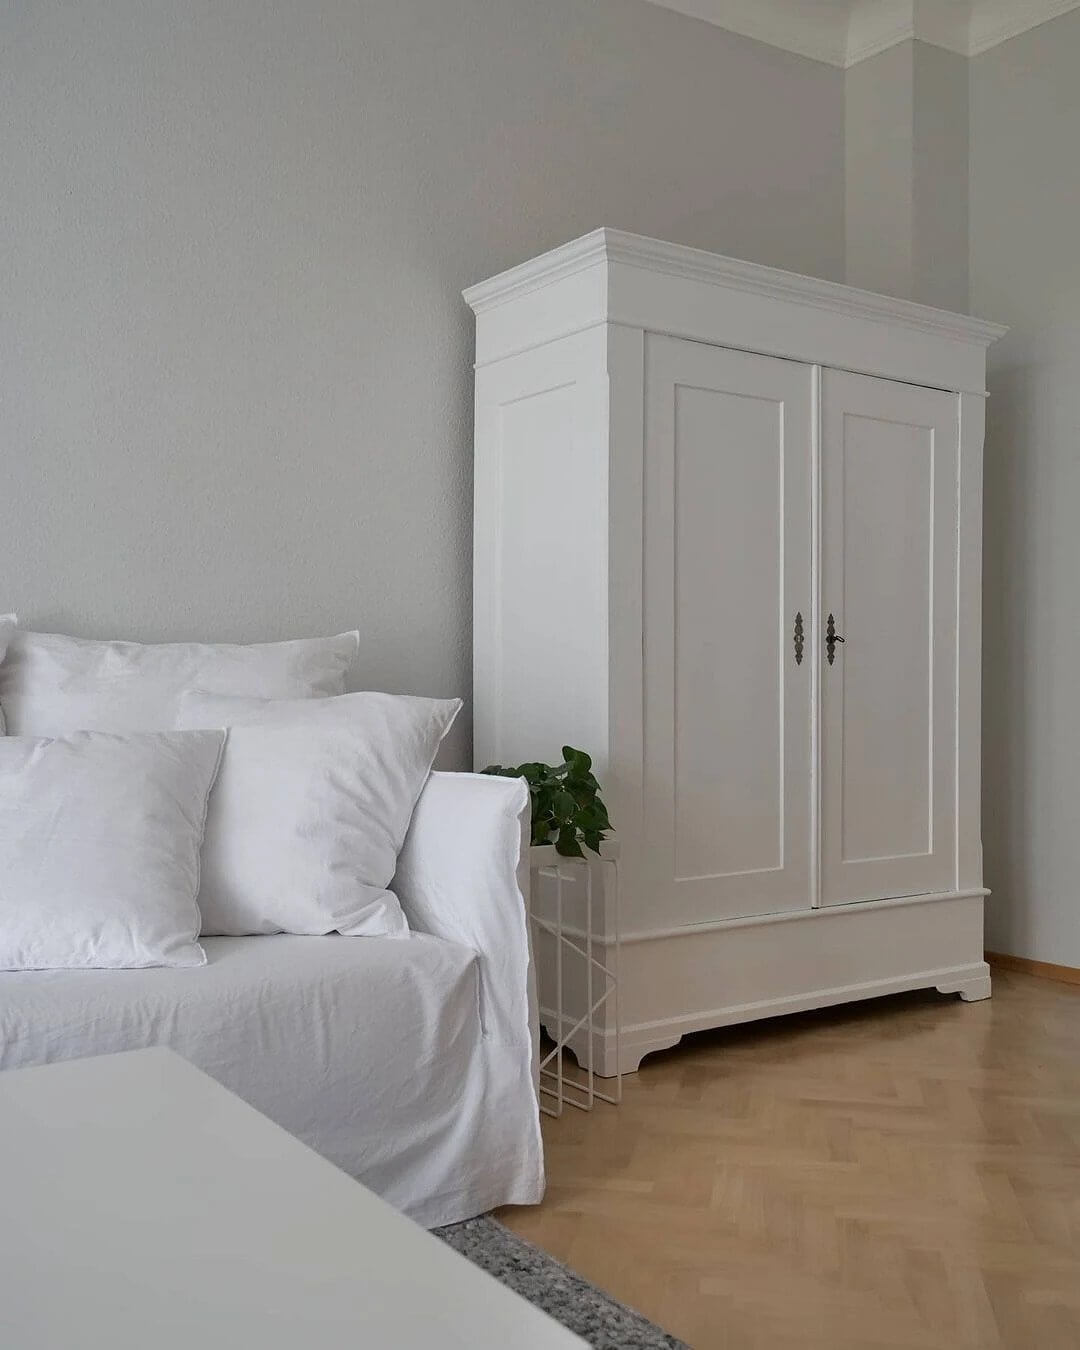 9. Almost sterile interior with white textiles and furniture